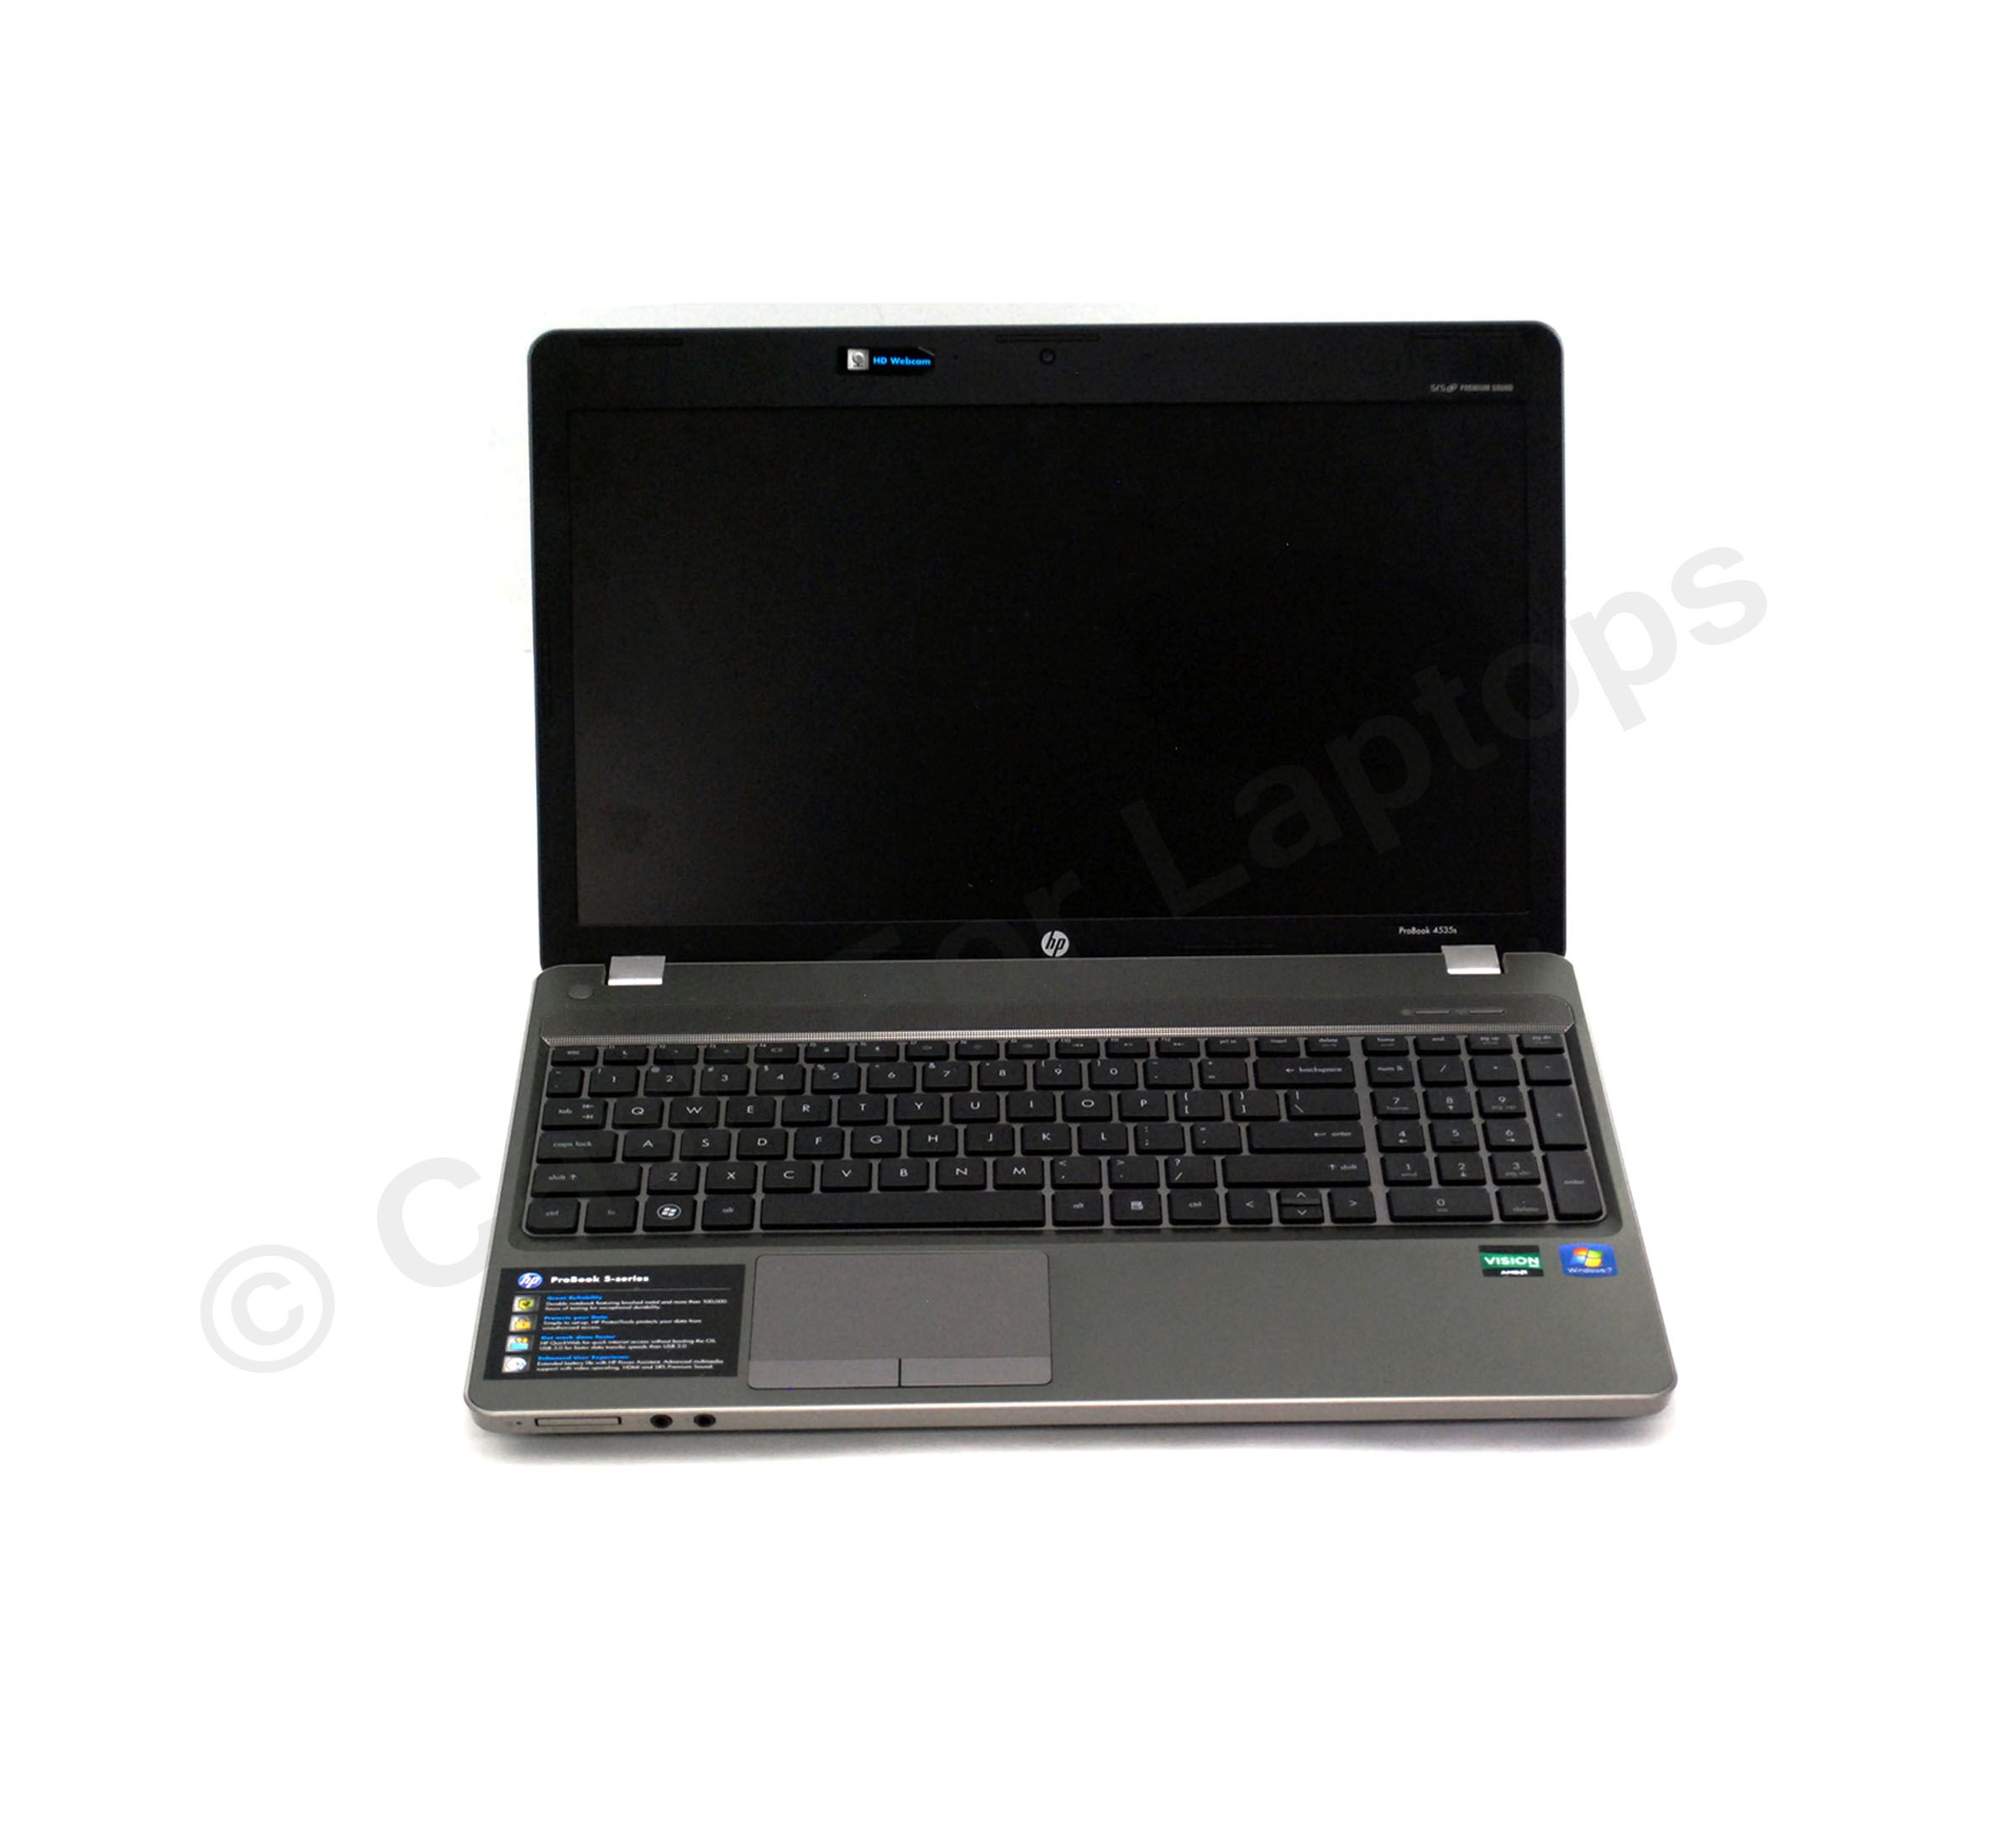 Acer aspire as7560 sb819 laptop pc amd fusion a6 3400m 14 ghz acer aspire as7560 sb819 laptop pc amd fusion a6 3400m 14 ghz quad core processor 6 gb ddr3 ram 640 gb hard drive 173 inch display wind fandeluxe Images